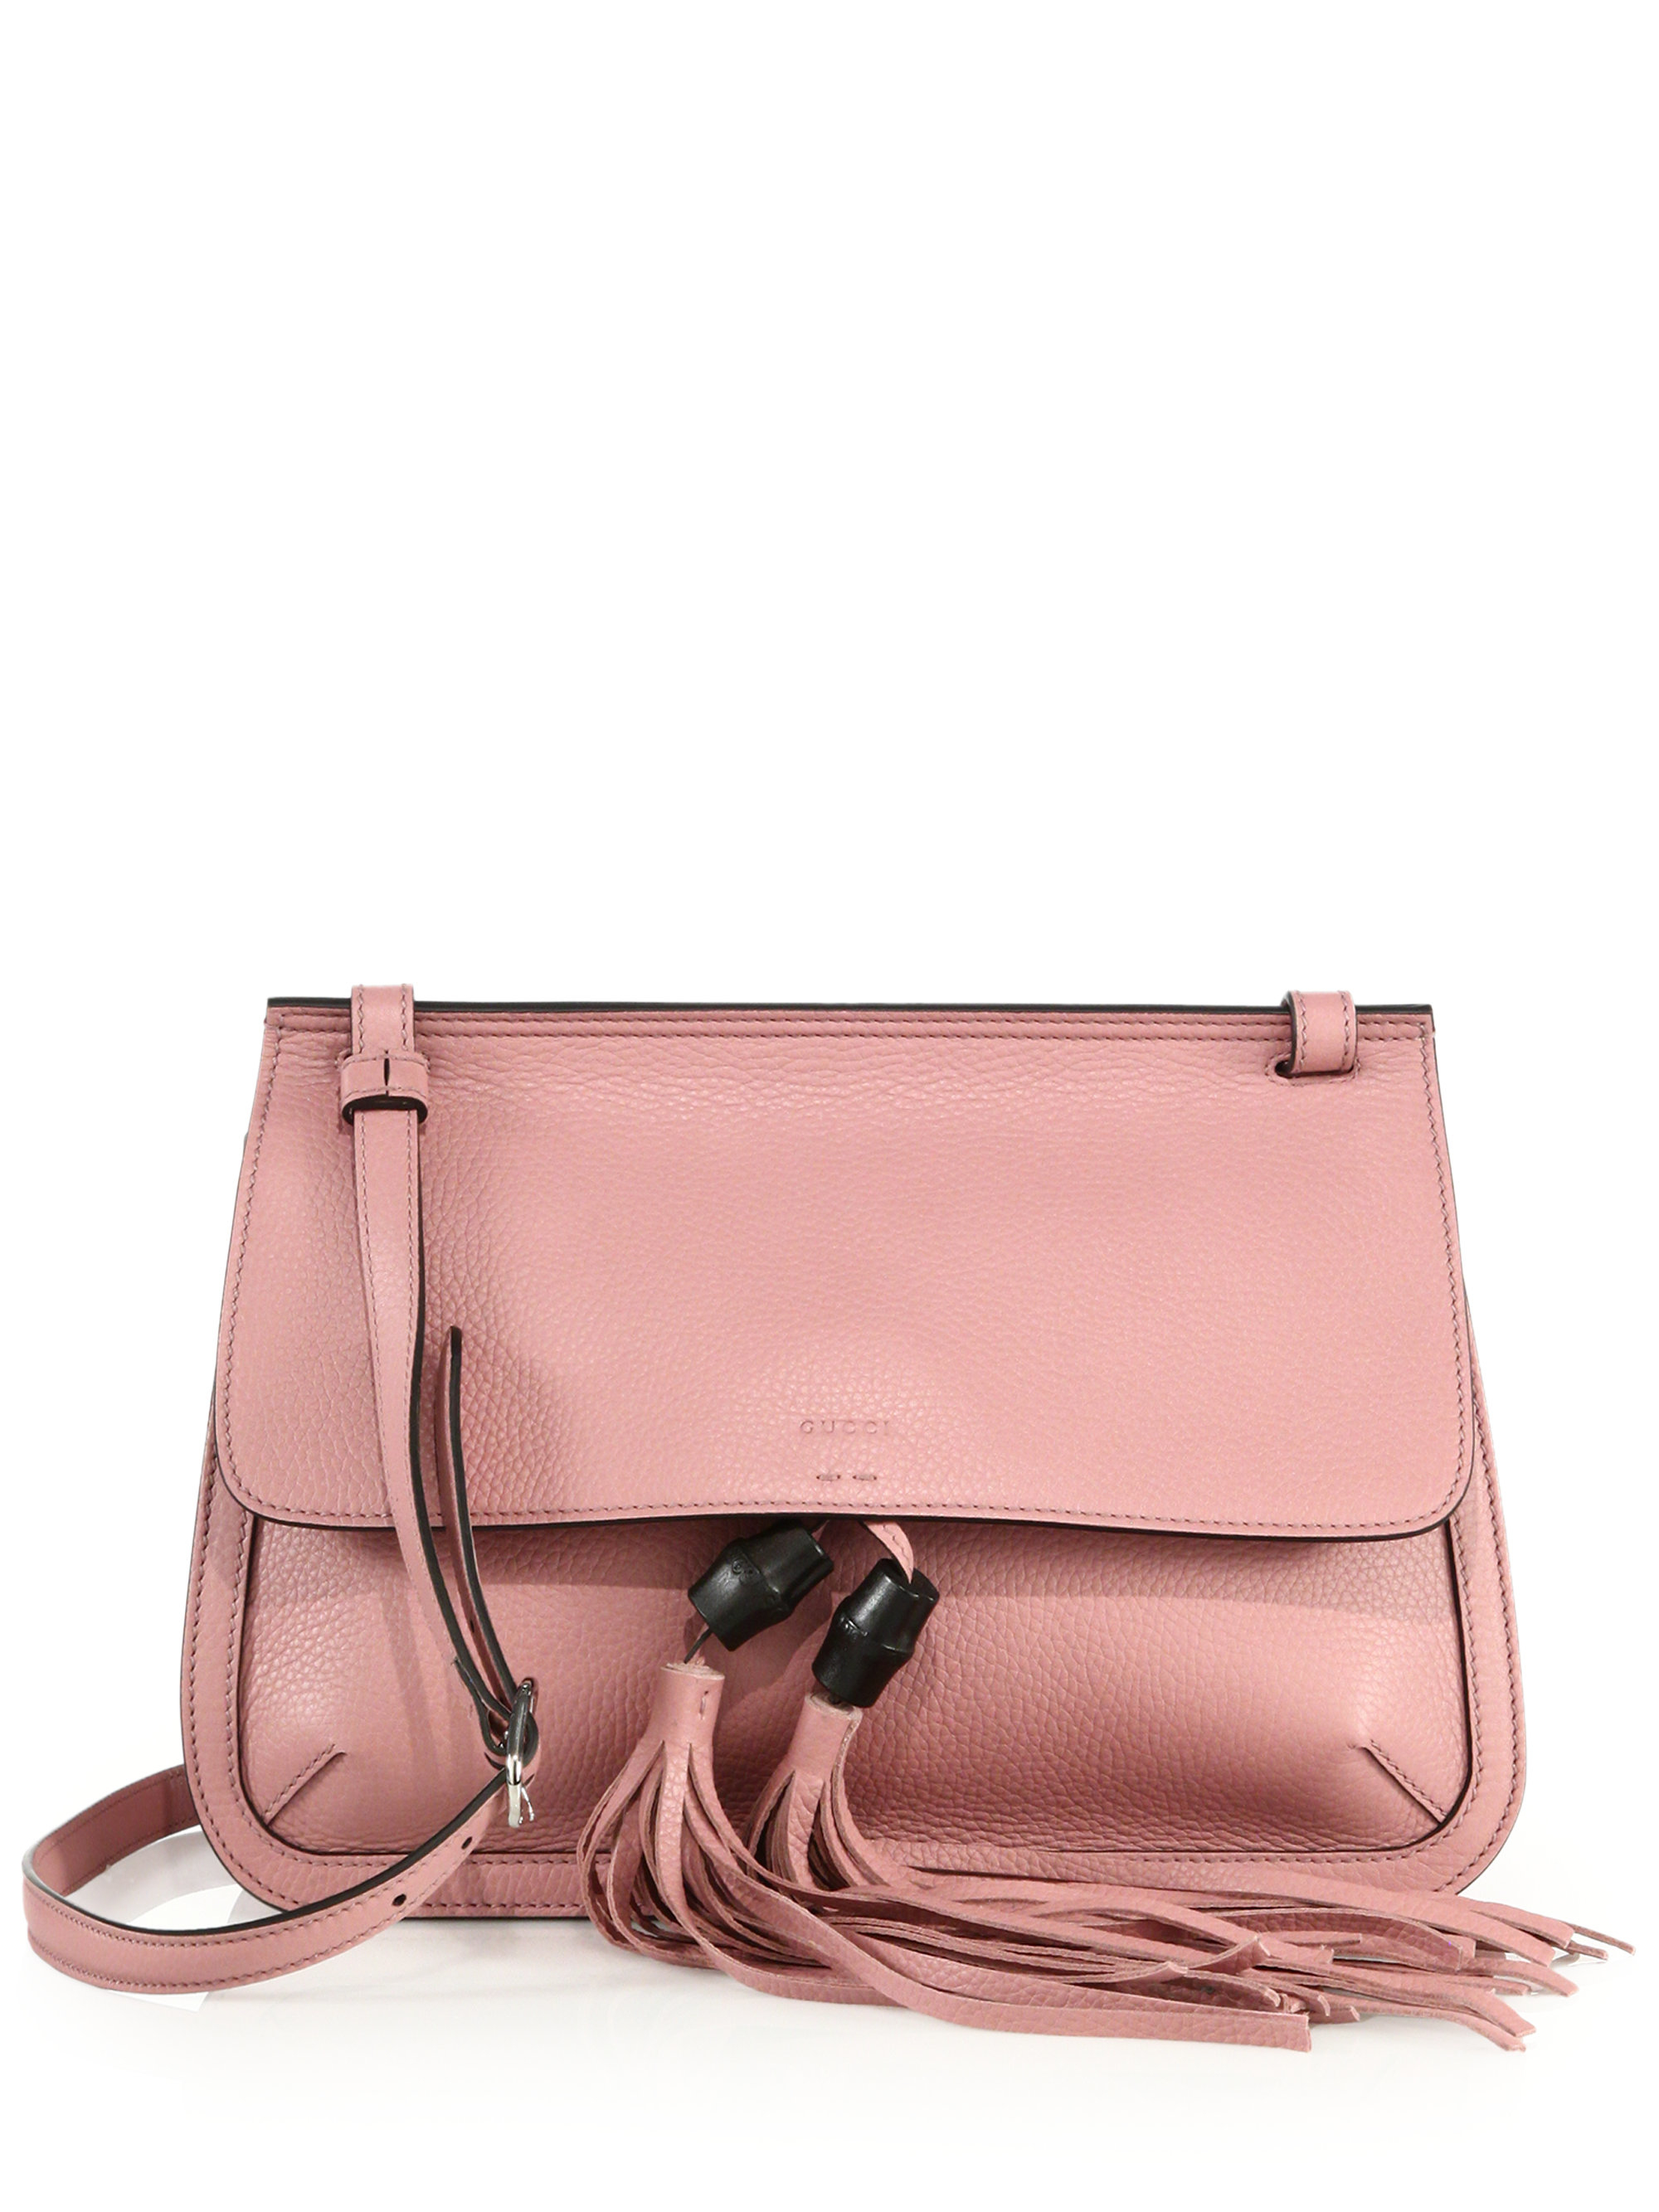 Gucci Bamboo Daily Leather Shoulder Bag in Pink | Lyst